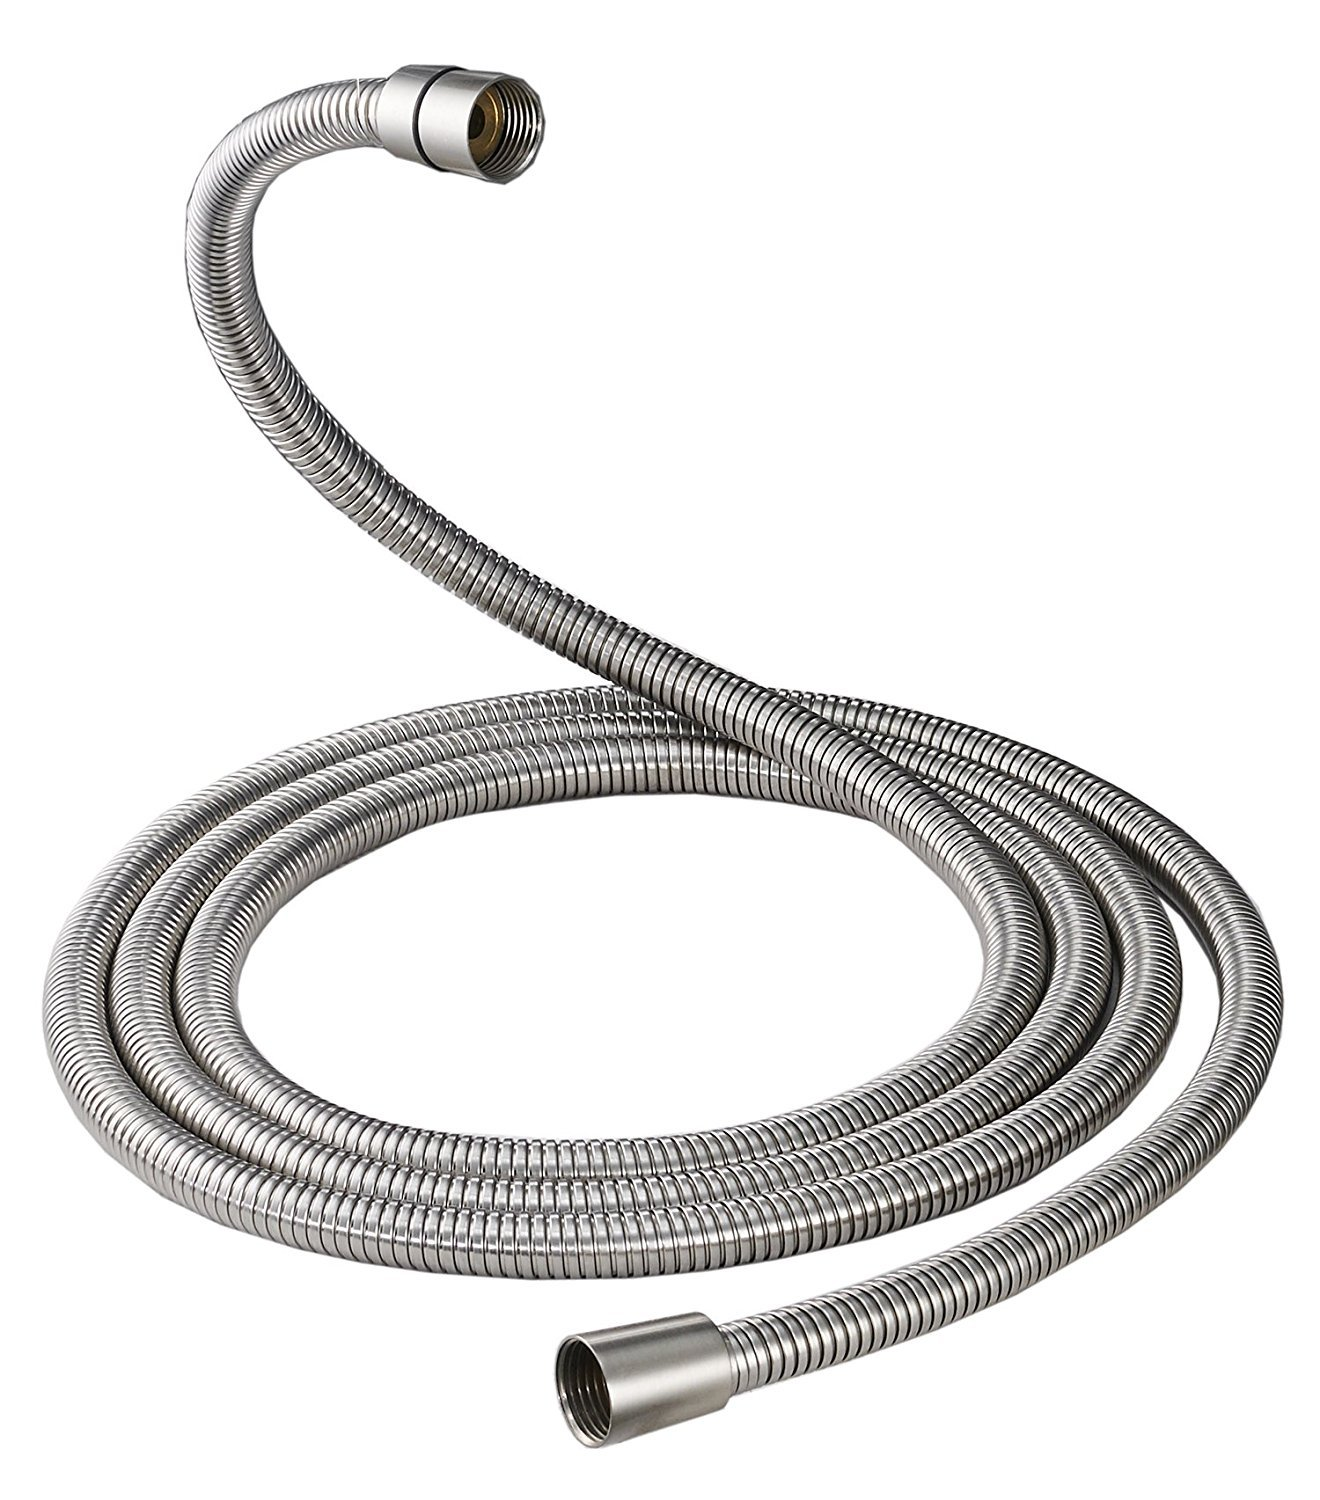 GGStudy Brushed Nickel 100 Inch Brass Fittings Extra Long Flexible Stainless Steel Replacement Handheld Shower Hose